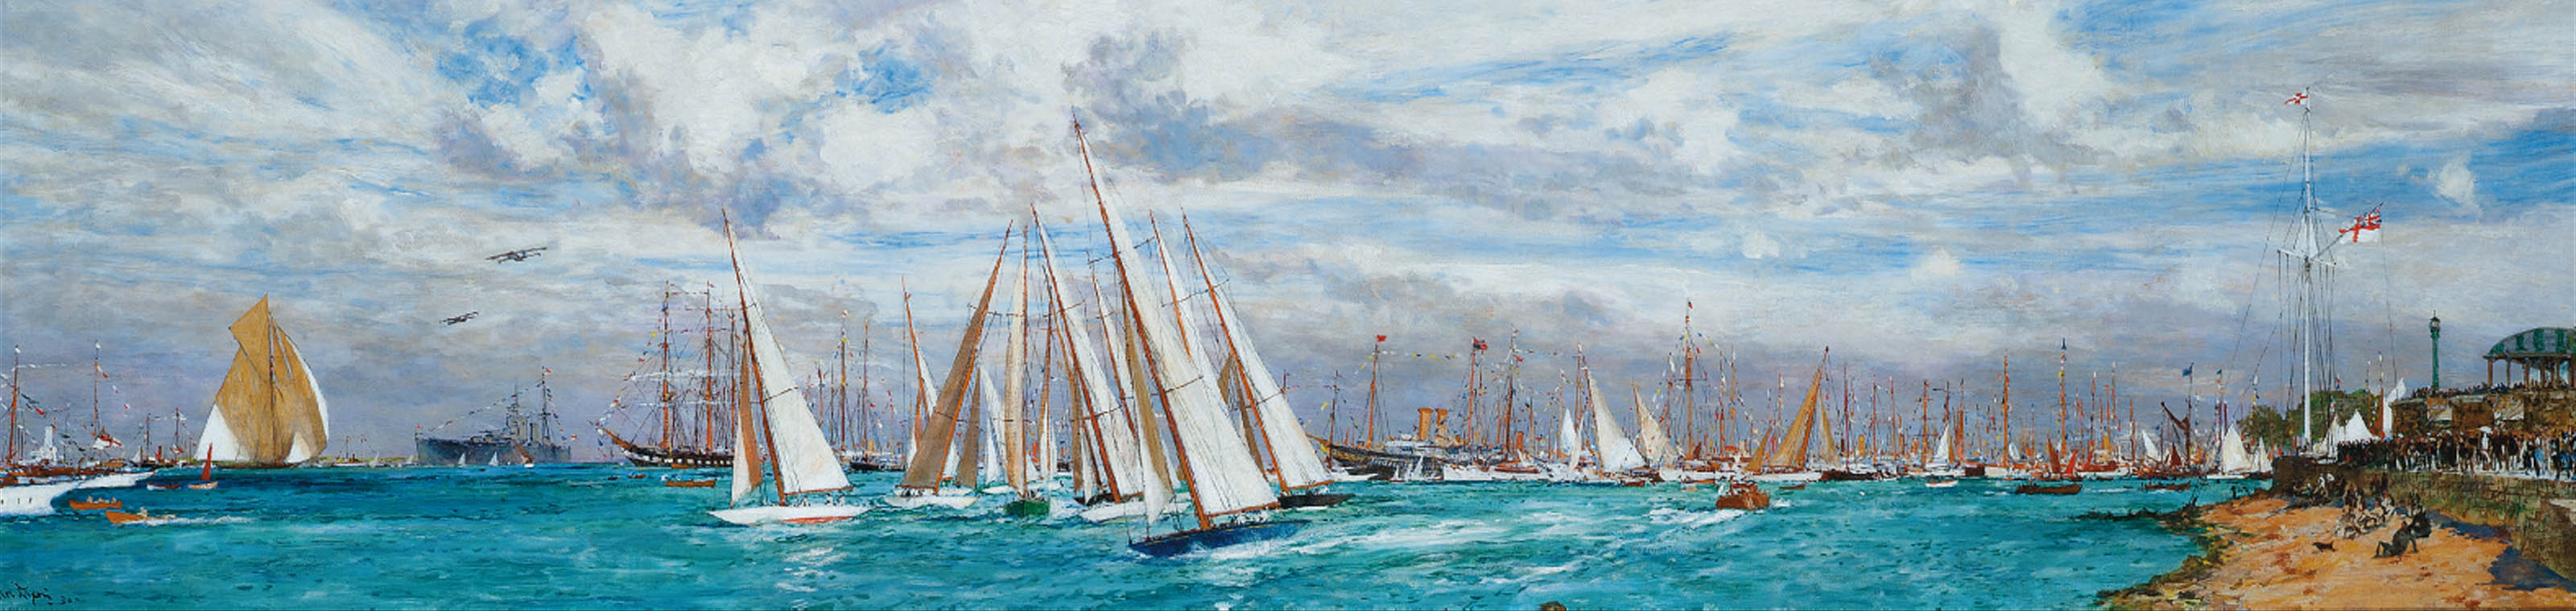 A one-design class crossing the starting line at Cowes Week, 1930, with the Royal Yacht Victoria and Albert (III), with H.M. George (V) aboard, lying in Cowes Roads, other yachts dressed overall and spectators lining the foreshore before the Royal Yacht Squadron